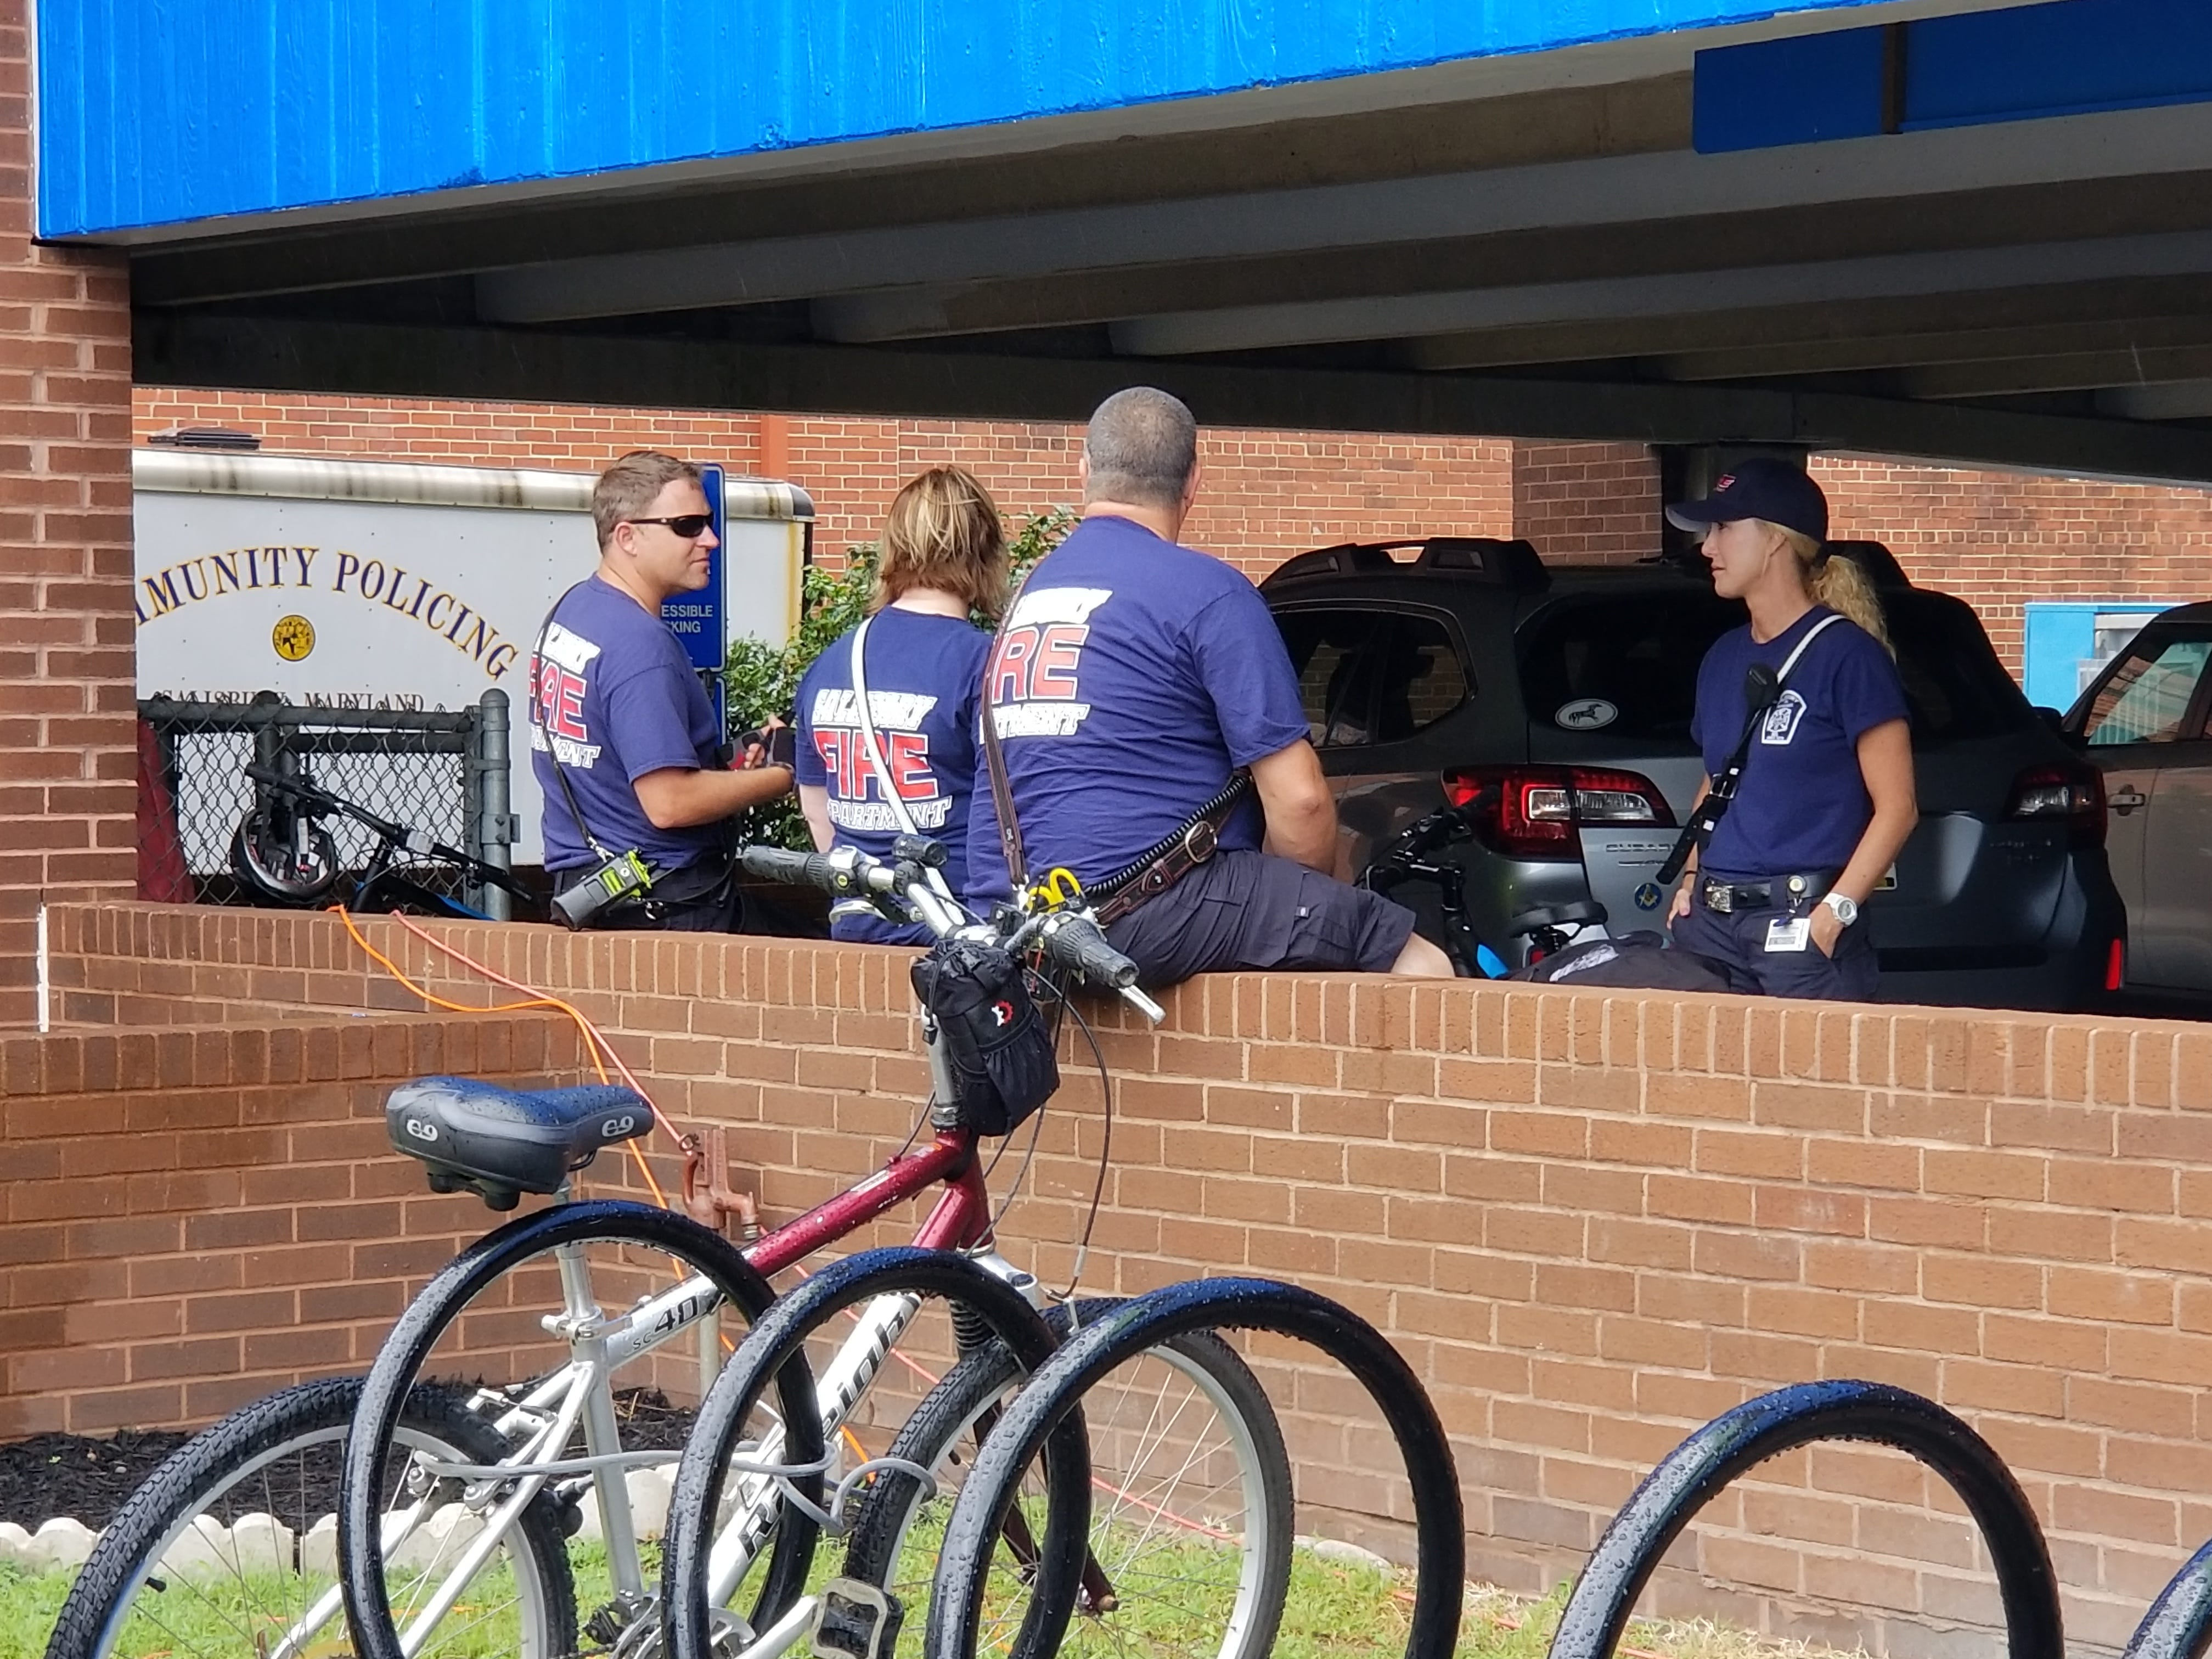 First responders take a break from helping at the National Folk Festival in Salisbury, Maryland on Sept. 8, 2018.